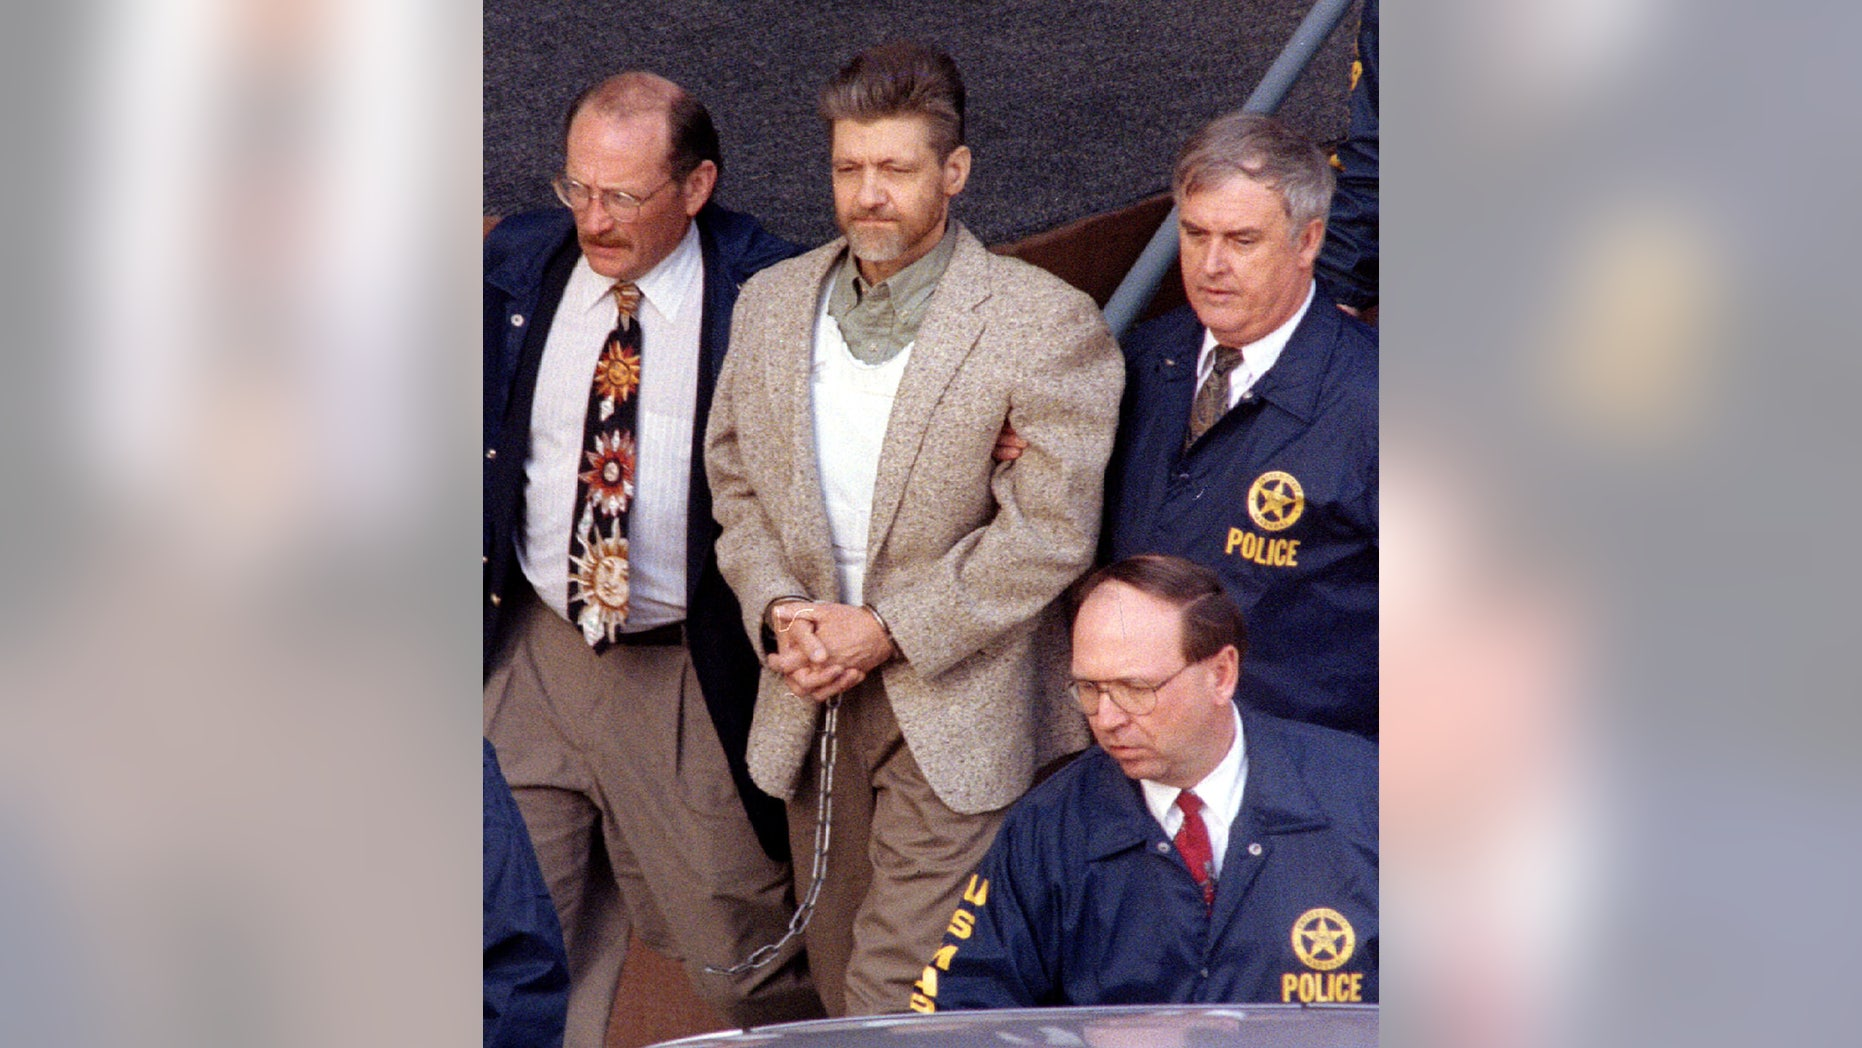 Unabomber suspect Ted Kaczynski is taken from the Helena federal courthouse by U.S. Marshals April 19. A federal judge denied Kaczynski's motion to dismiss the charges against him - RTXGTZC